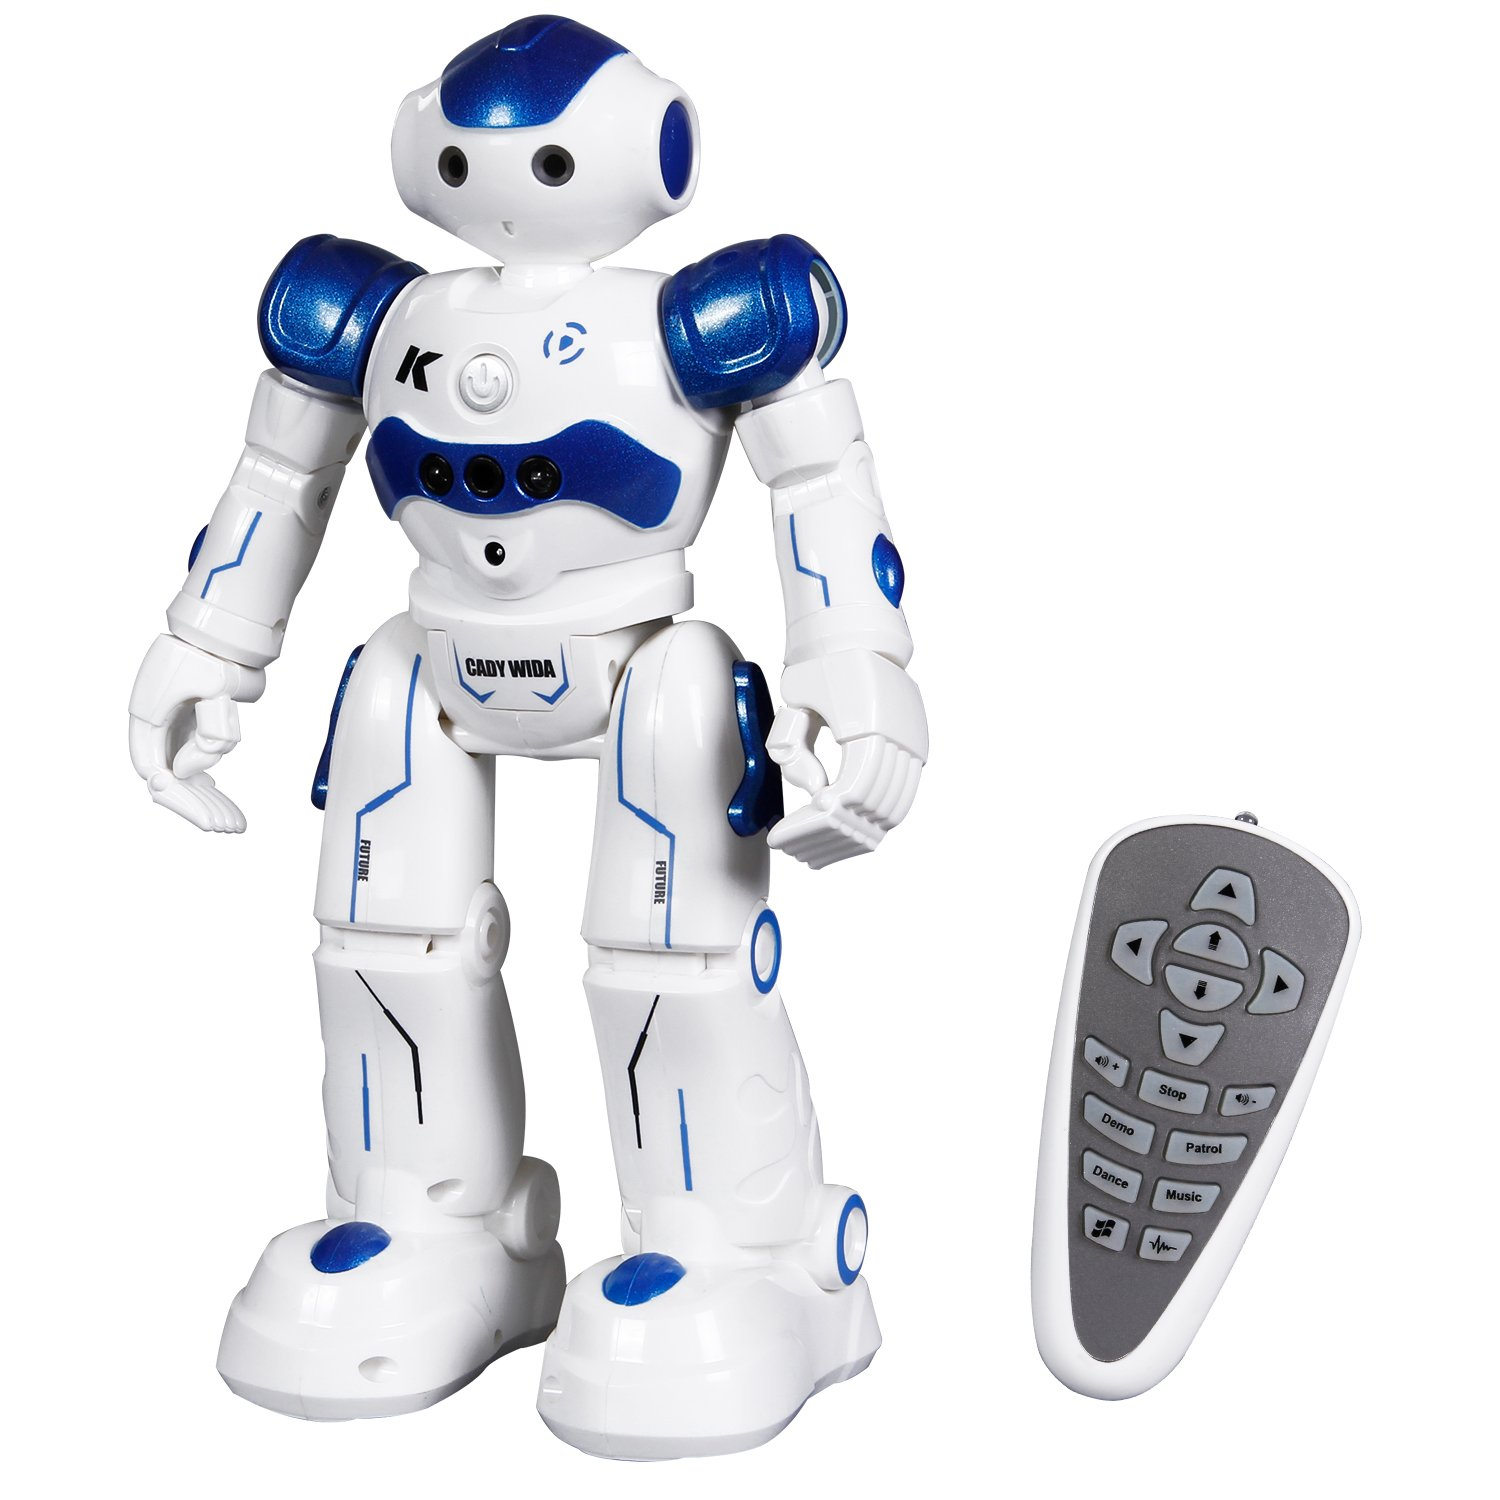 Remote Control RC Programmable Robot for Kids Birthday Gift Present, Interactive Walking Singing Dancing Smart Robotics for Kids Boys Girls (Blue)